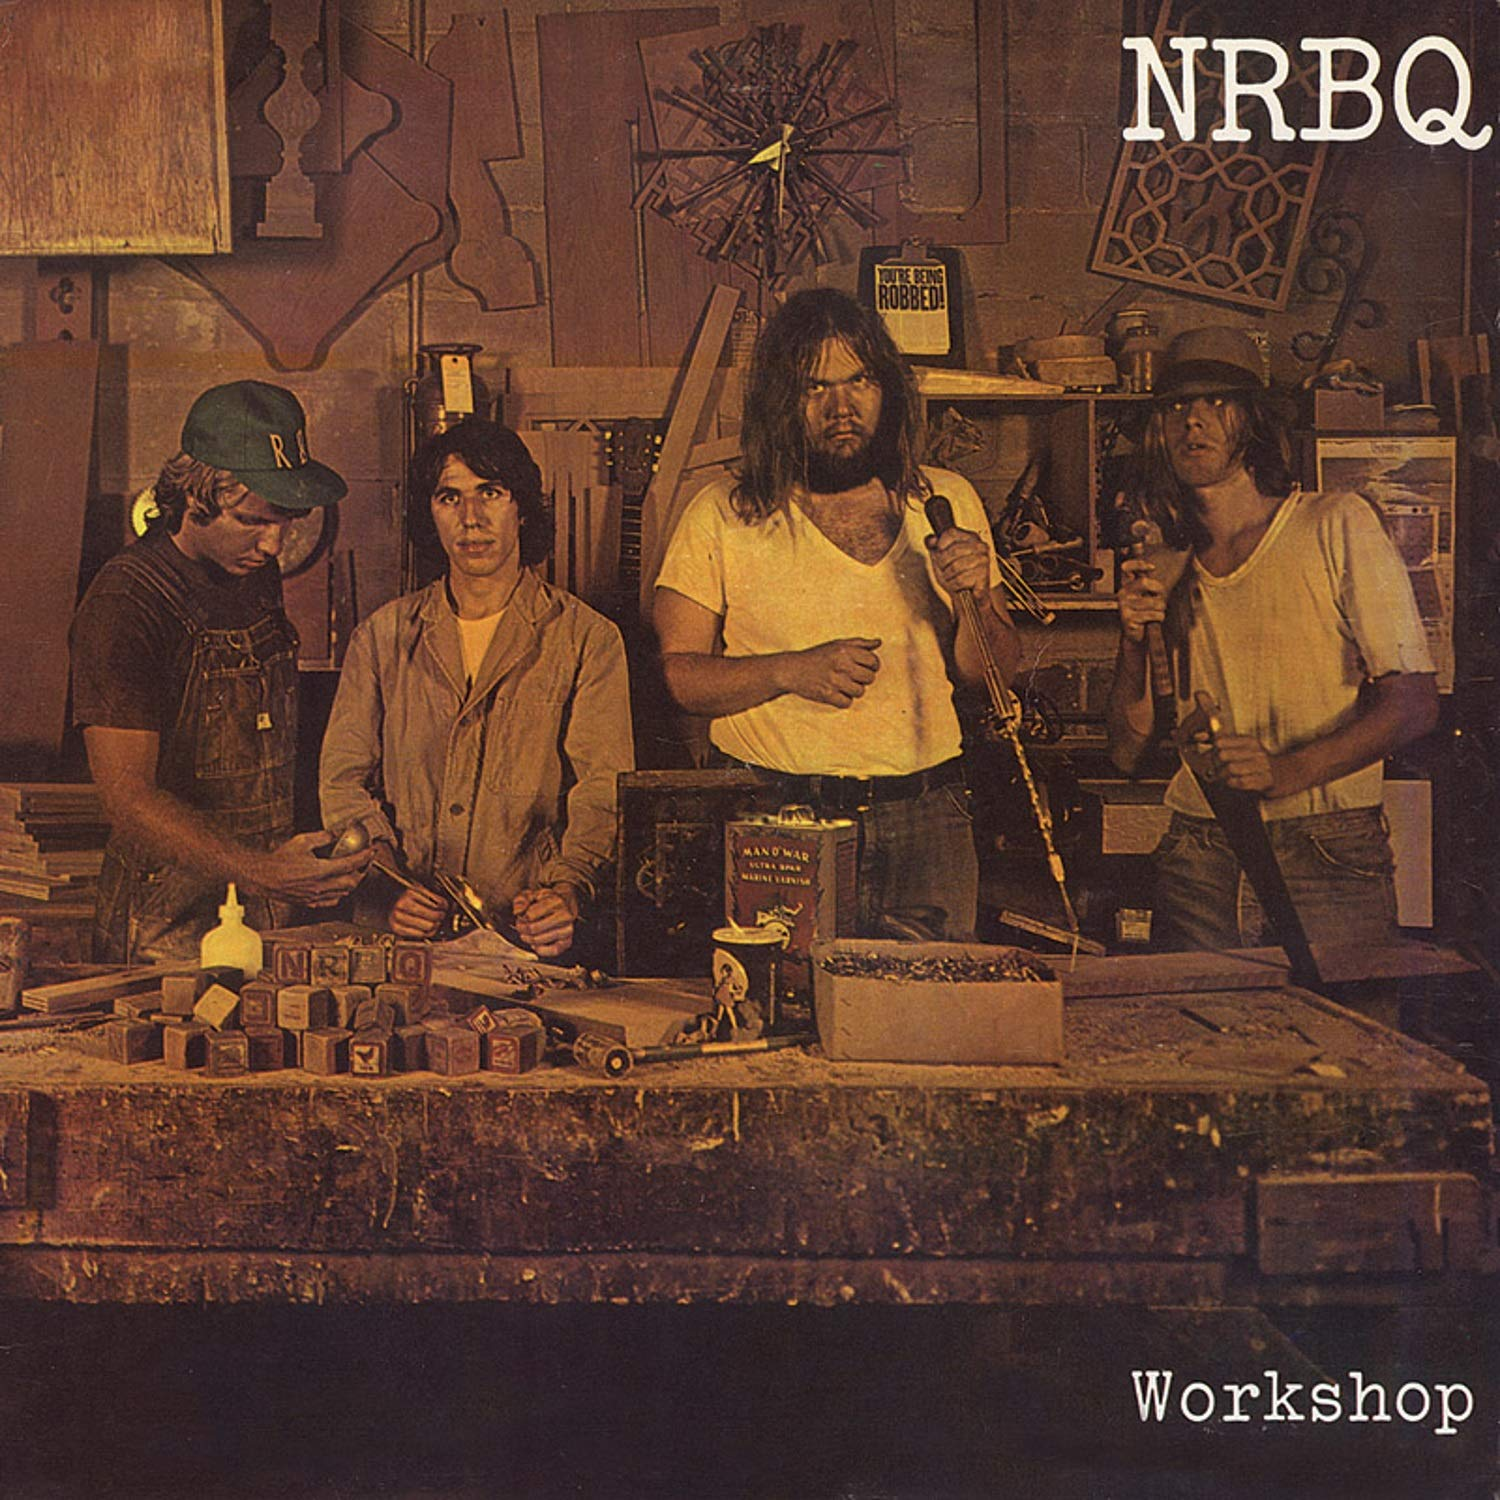 Nrbq - Workshop